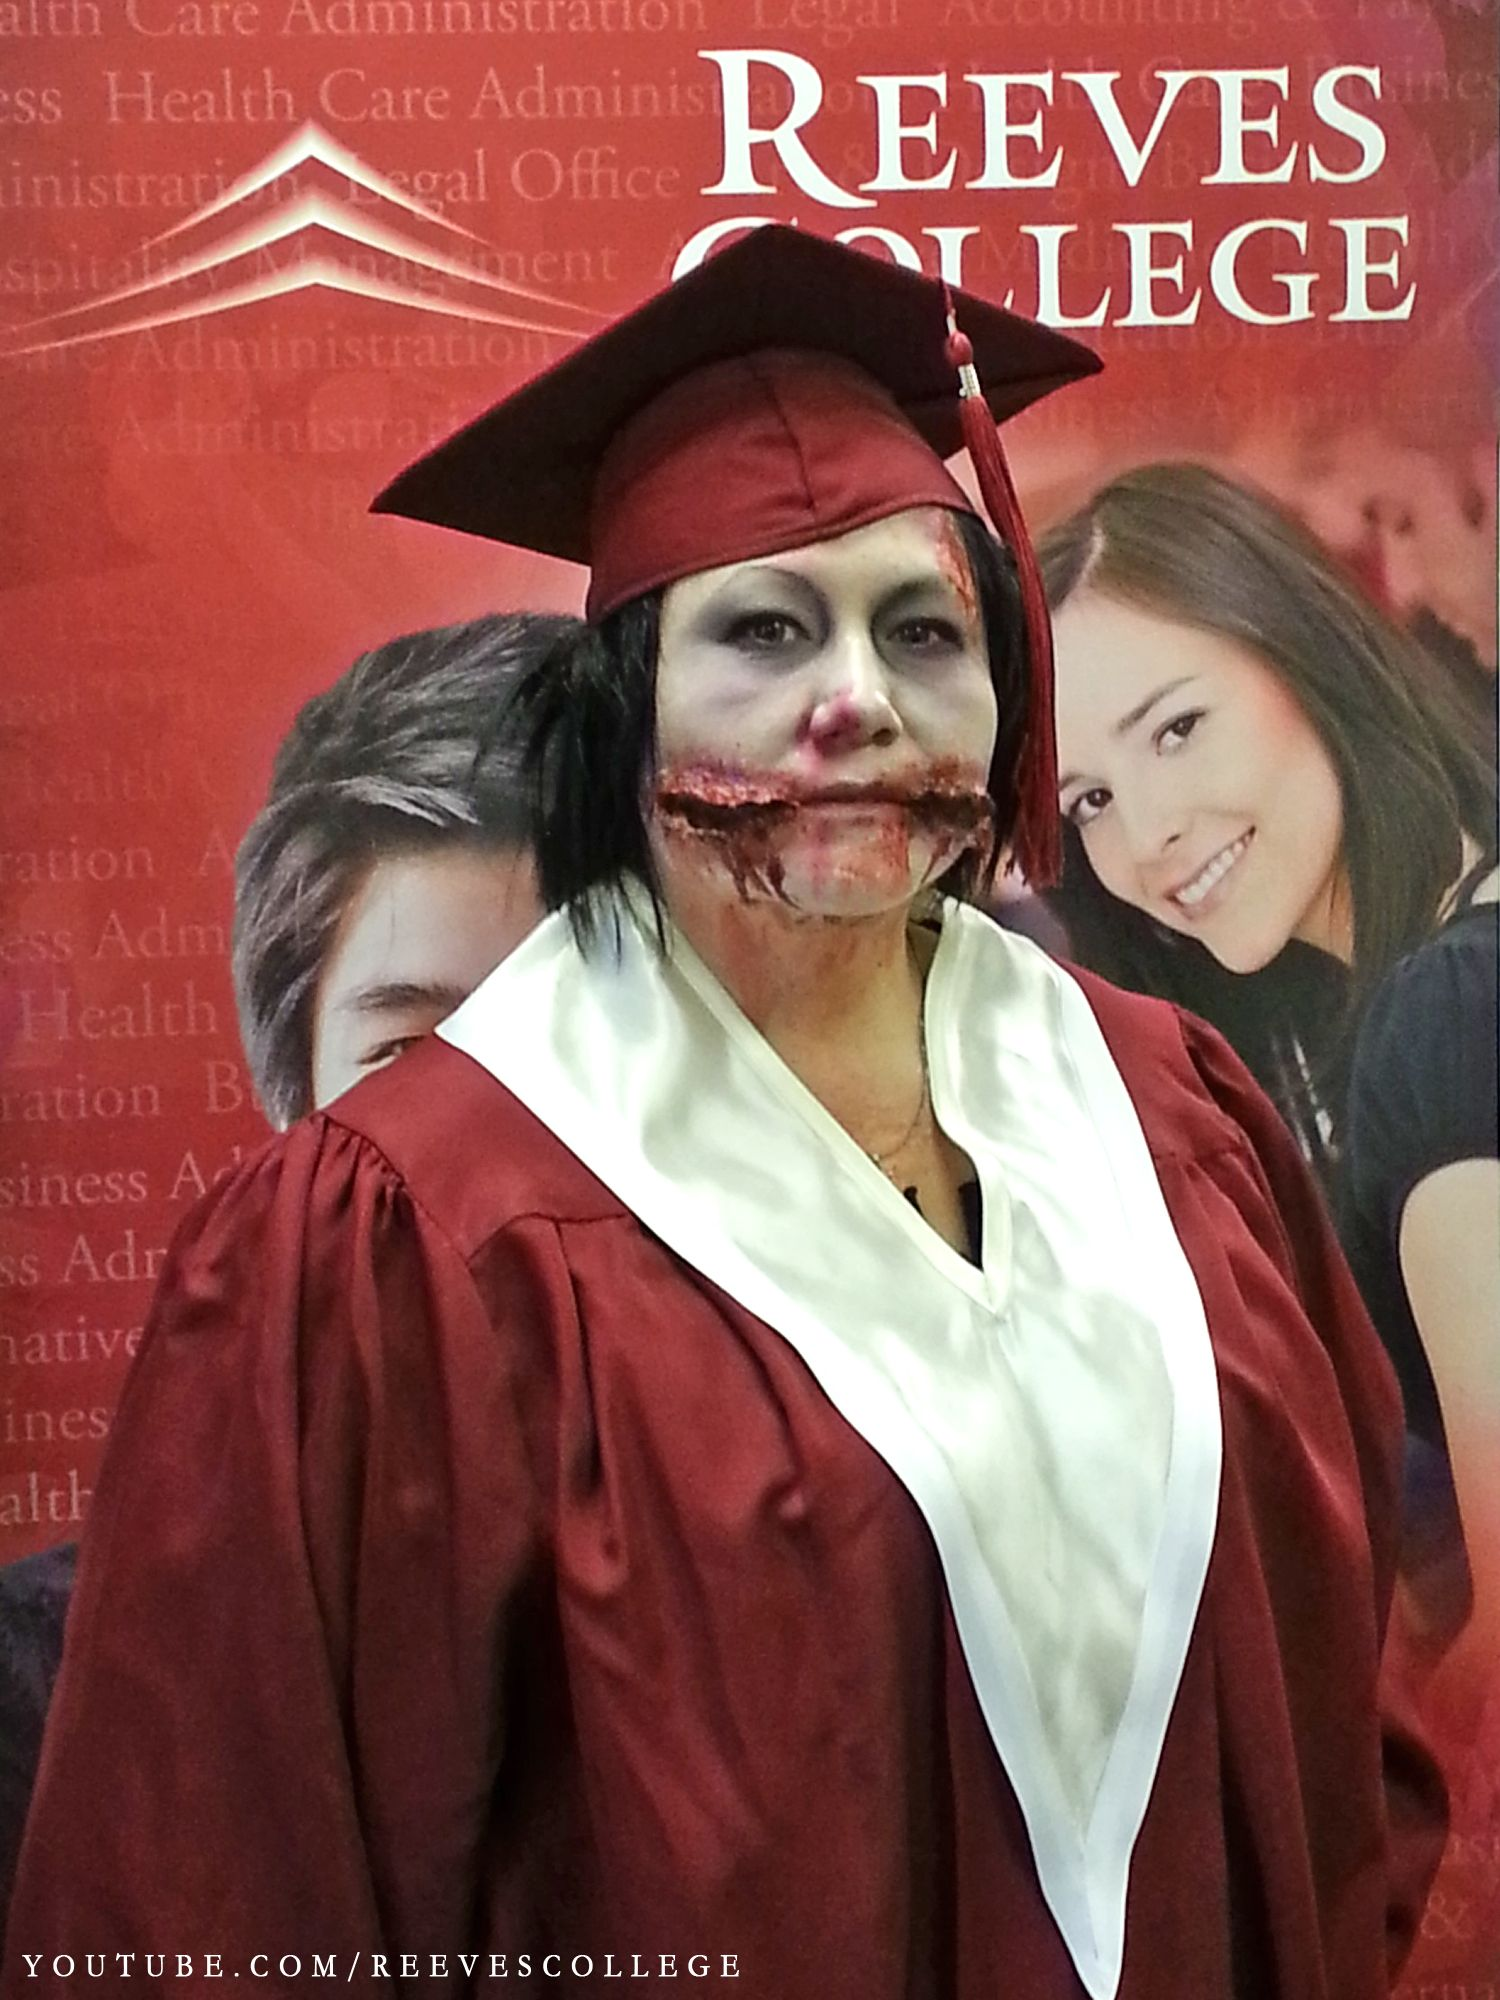 Reeves College Lloydminster Campus Students, Staff and Faculty in Halloween Costumes - Rhonda Campus Director Subscribe to Reeves College: http://www.youtube.com/subscription_center?add_user=ReevesCollege #ReevesCollege #Lloydminster #Campus #Students #Staff #Faculty #Halloween #Costumes #Rhonda #Campus #Director